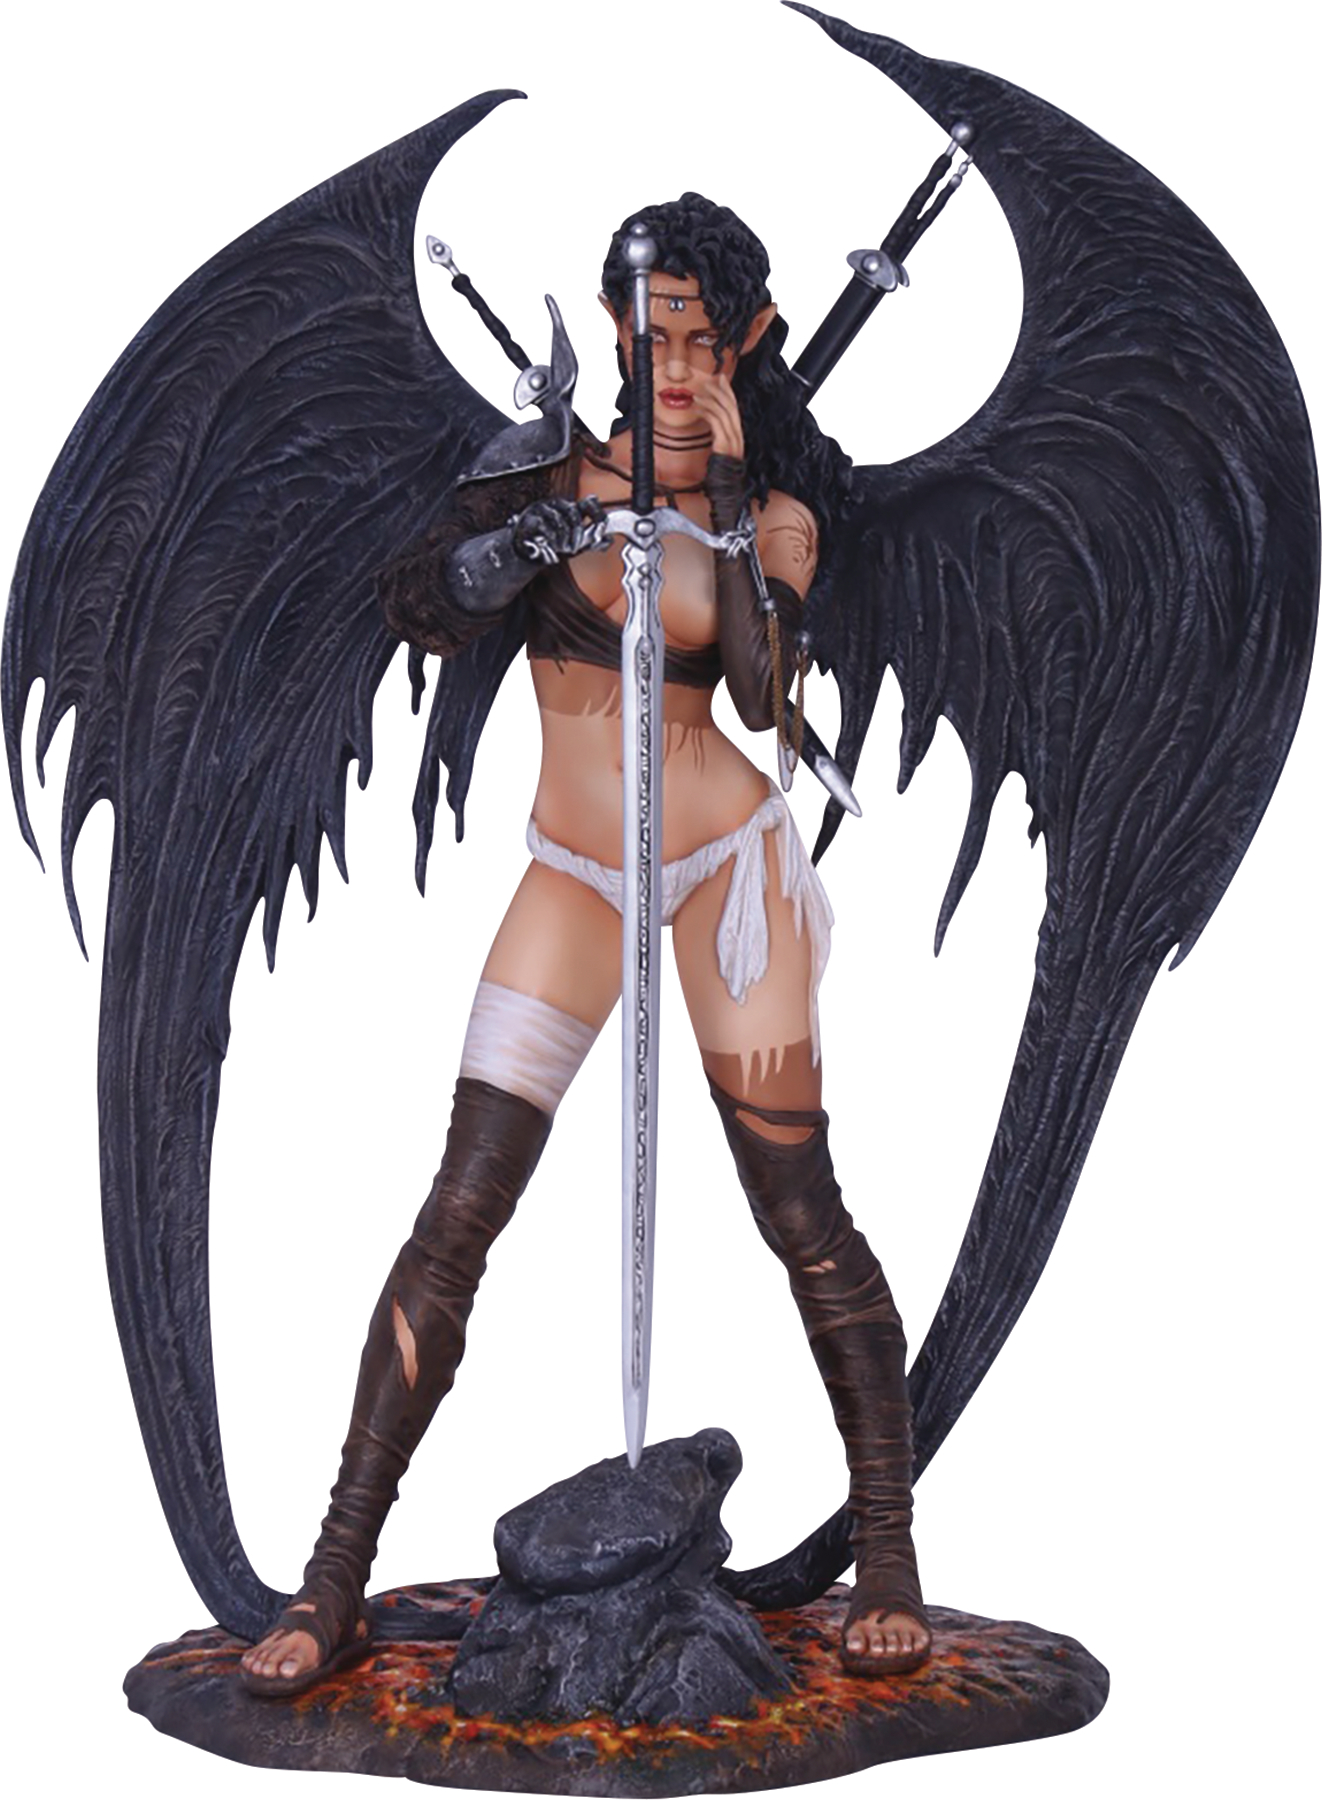 FFG DARK ELF BY LUIS ROYO 1/4 SCALE STATUE